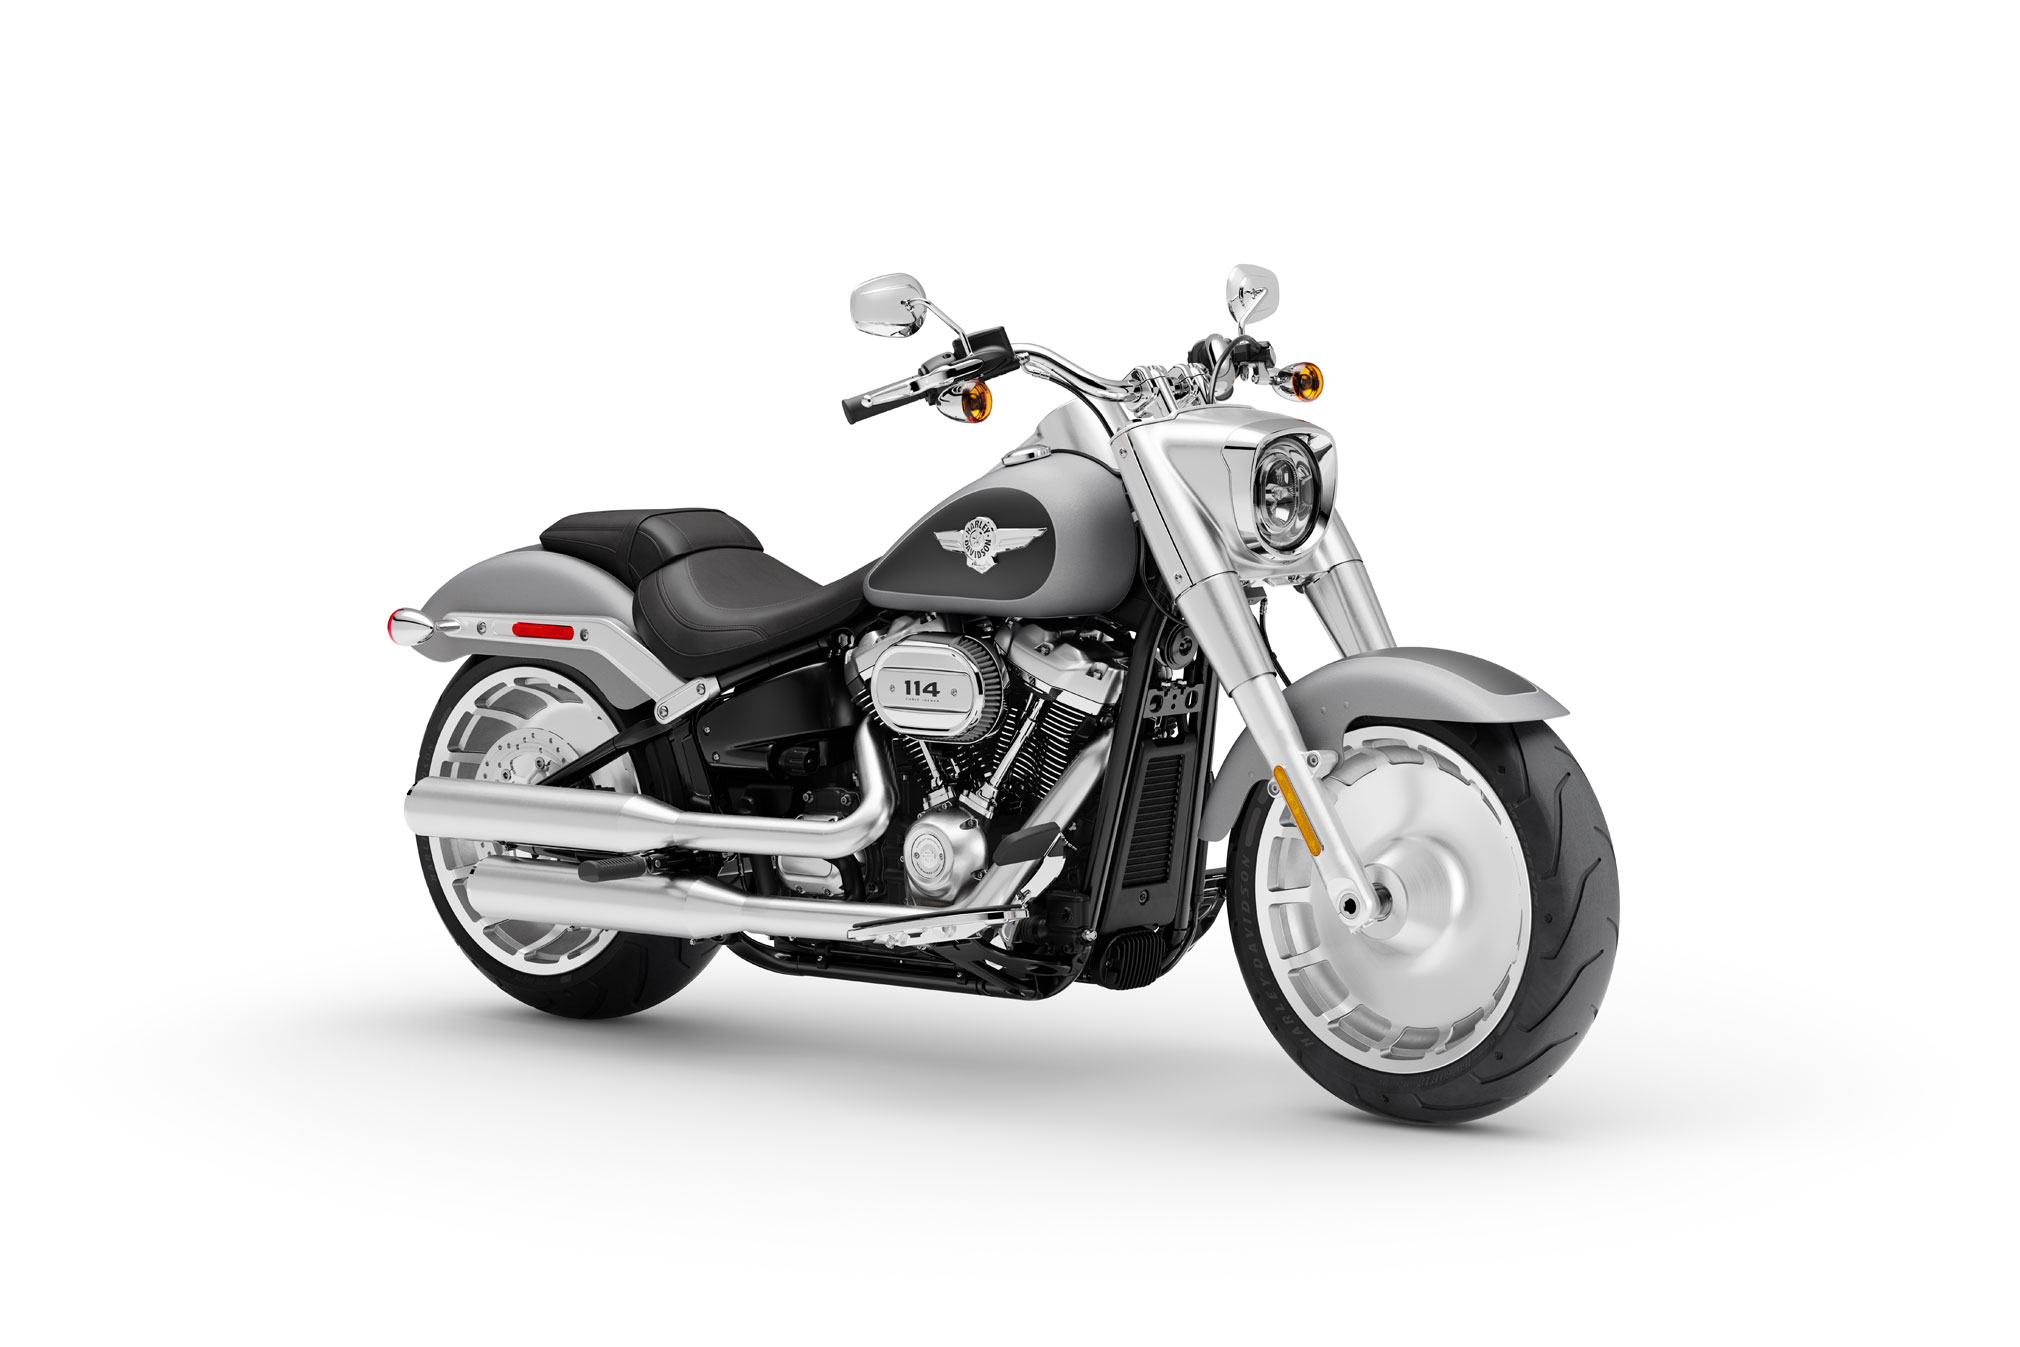 2020 Harley-Davidson Fat Boy 114 Guide • Total Motorcycle